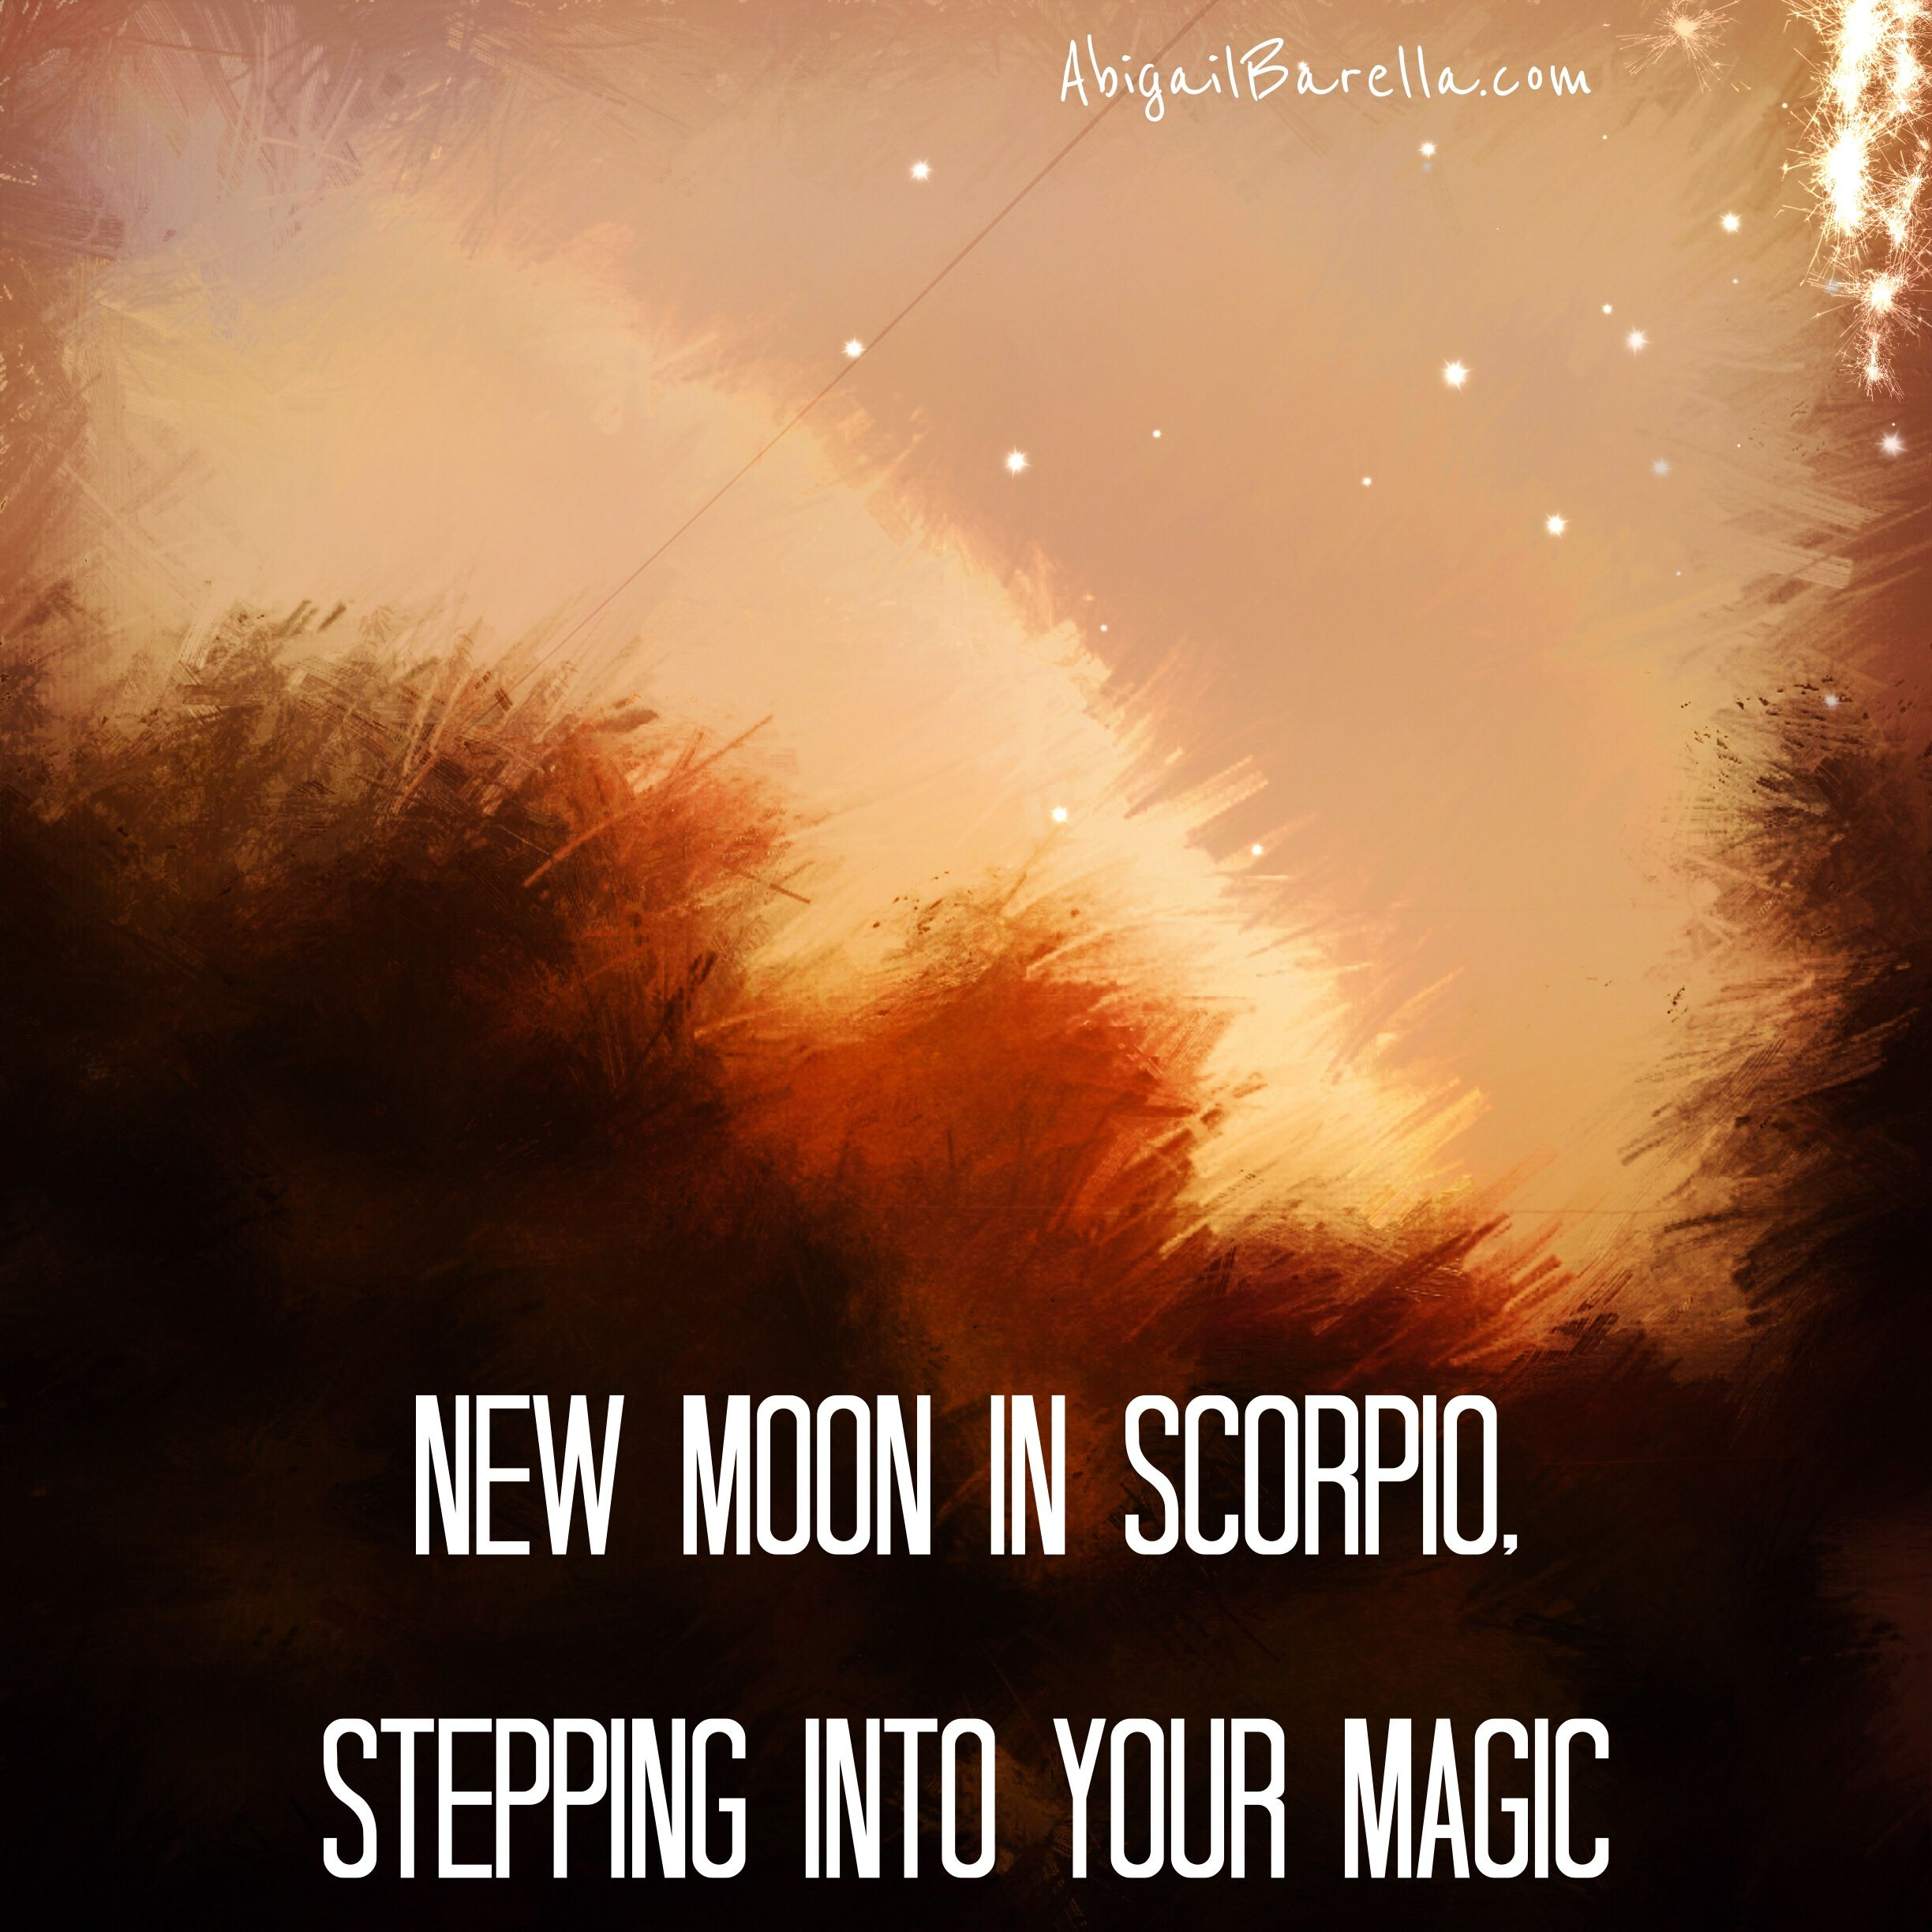 Scorpio new moons usher in the inner transformation the ability scorpio new moons usher in the inner transformation the ability to step into more of geenschuldenfo Choice Image